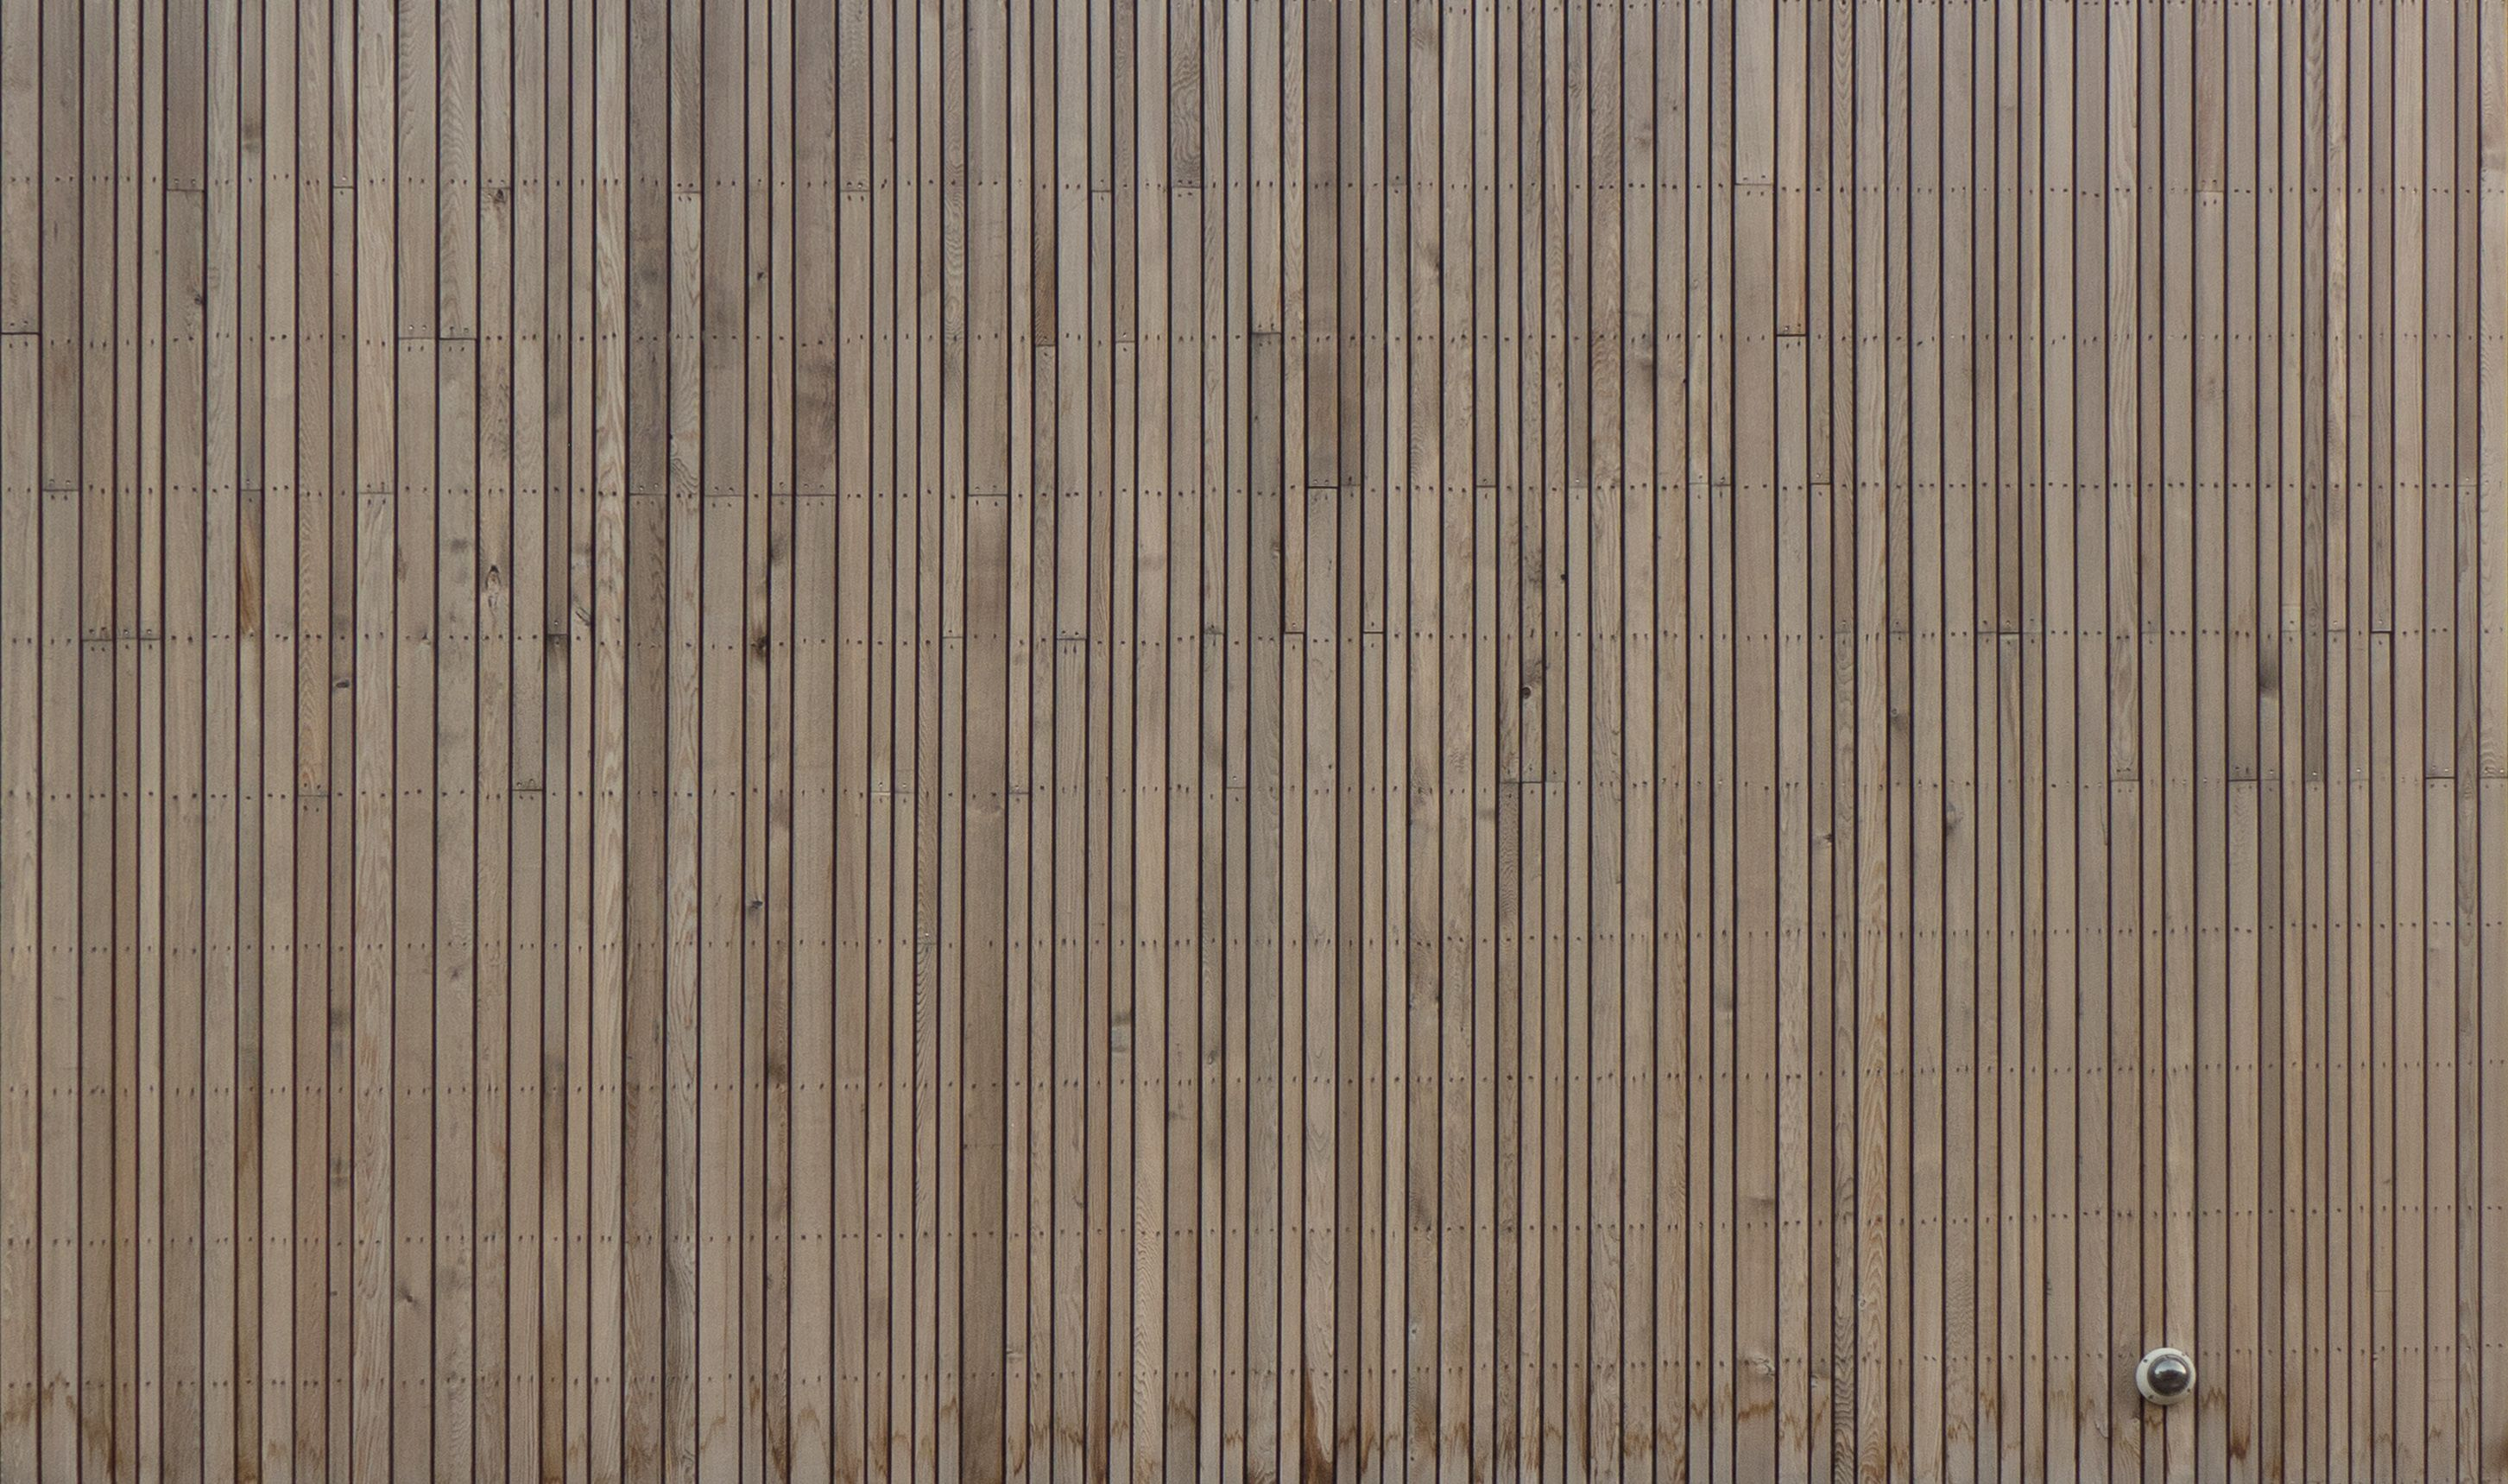 Wood Texture For Elevation : Slatted wood texture google search curry materials